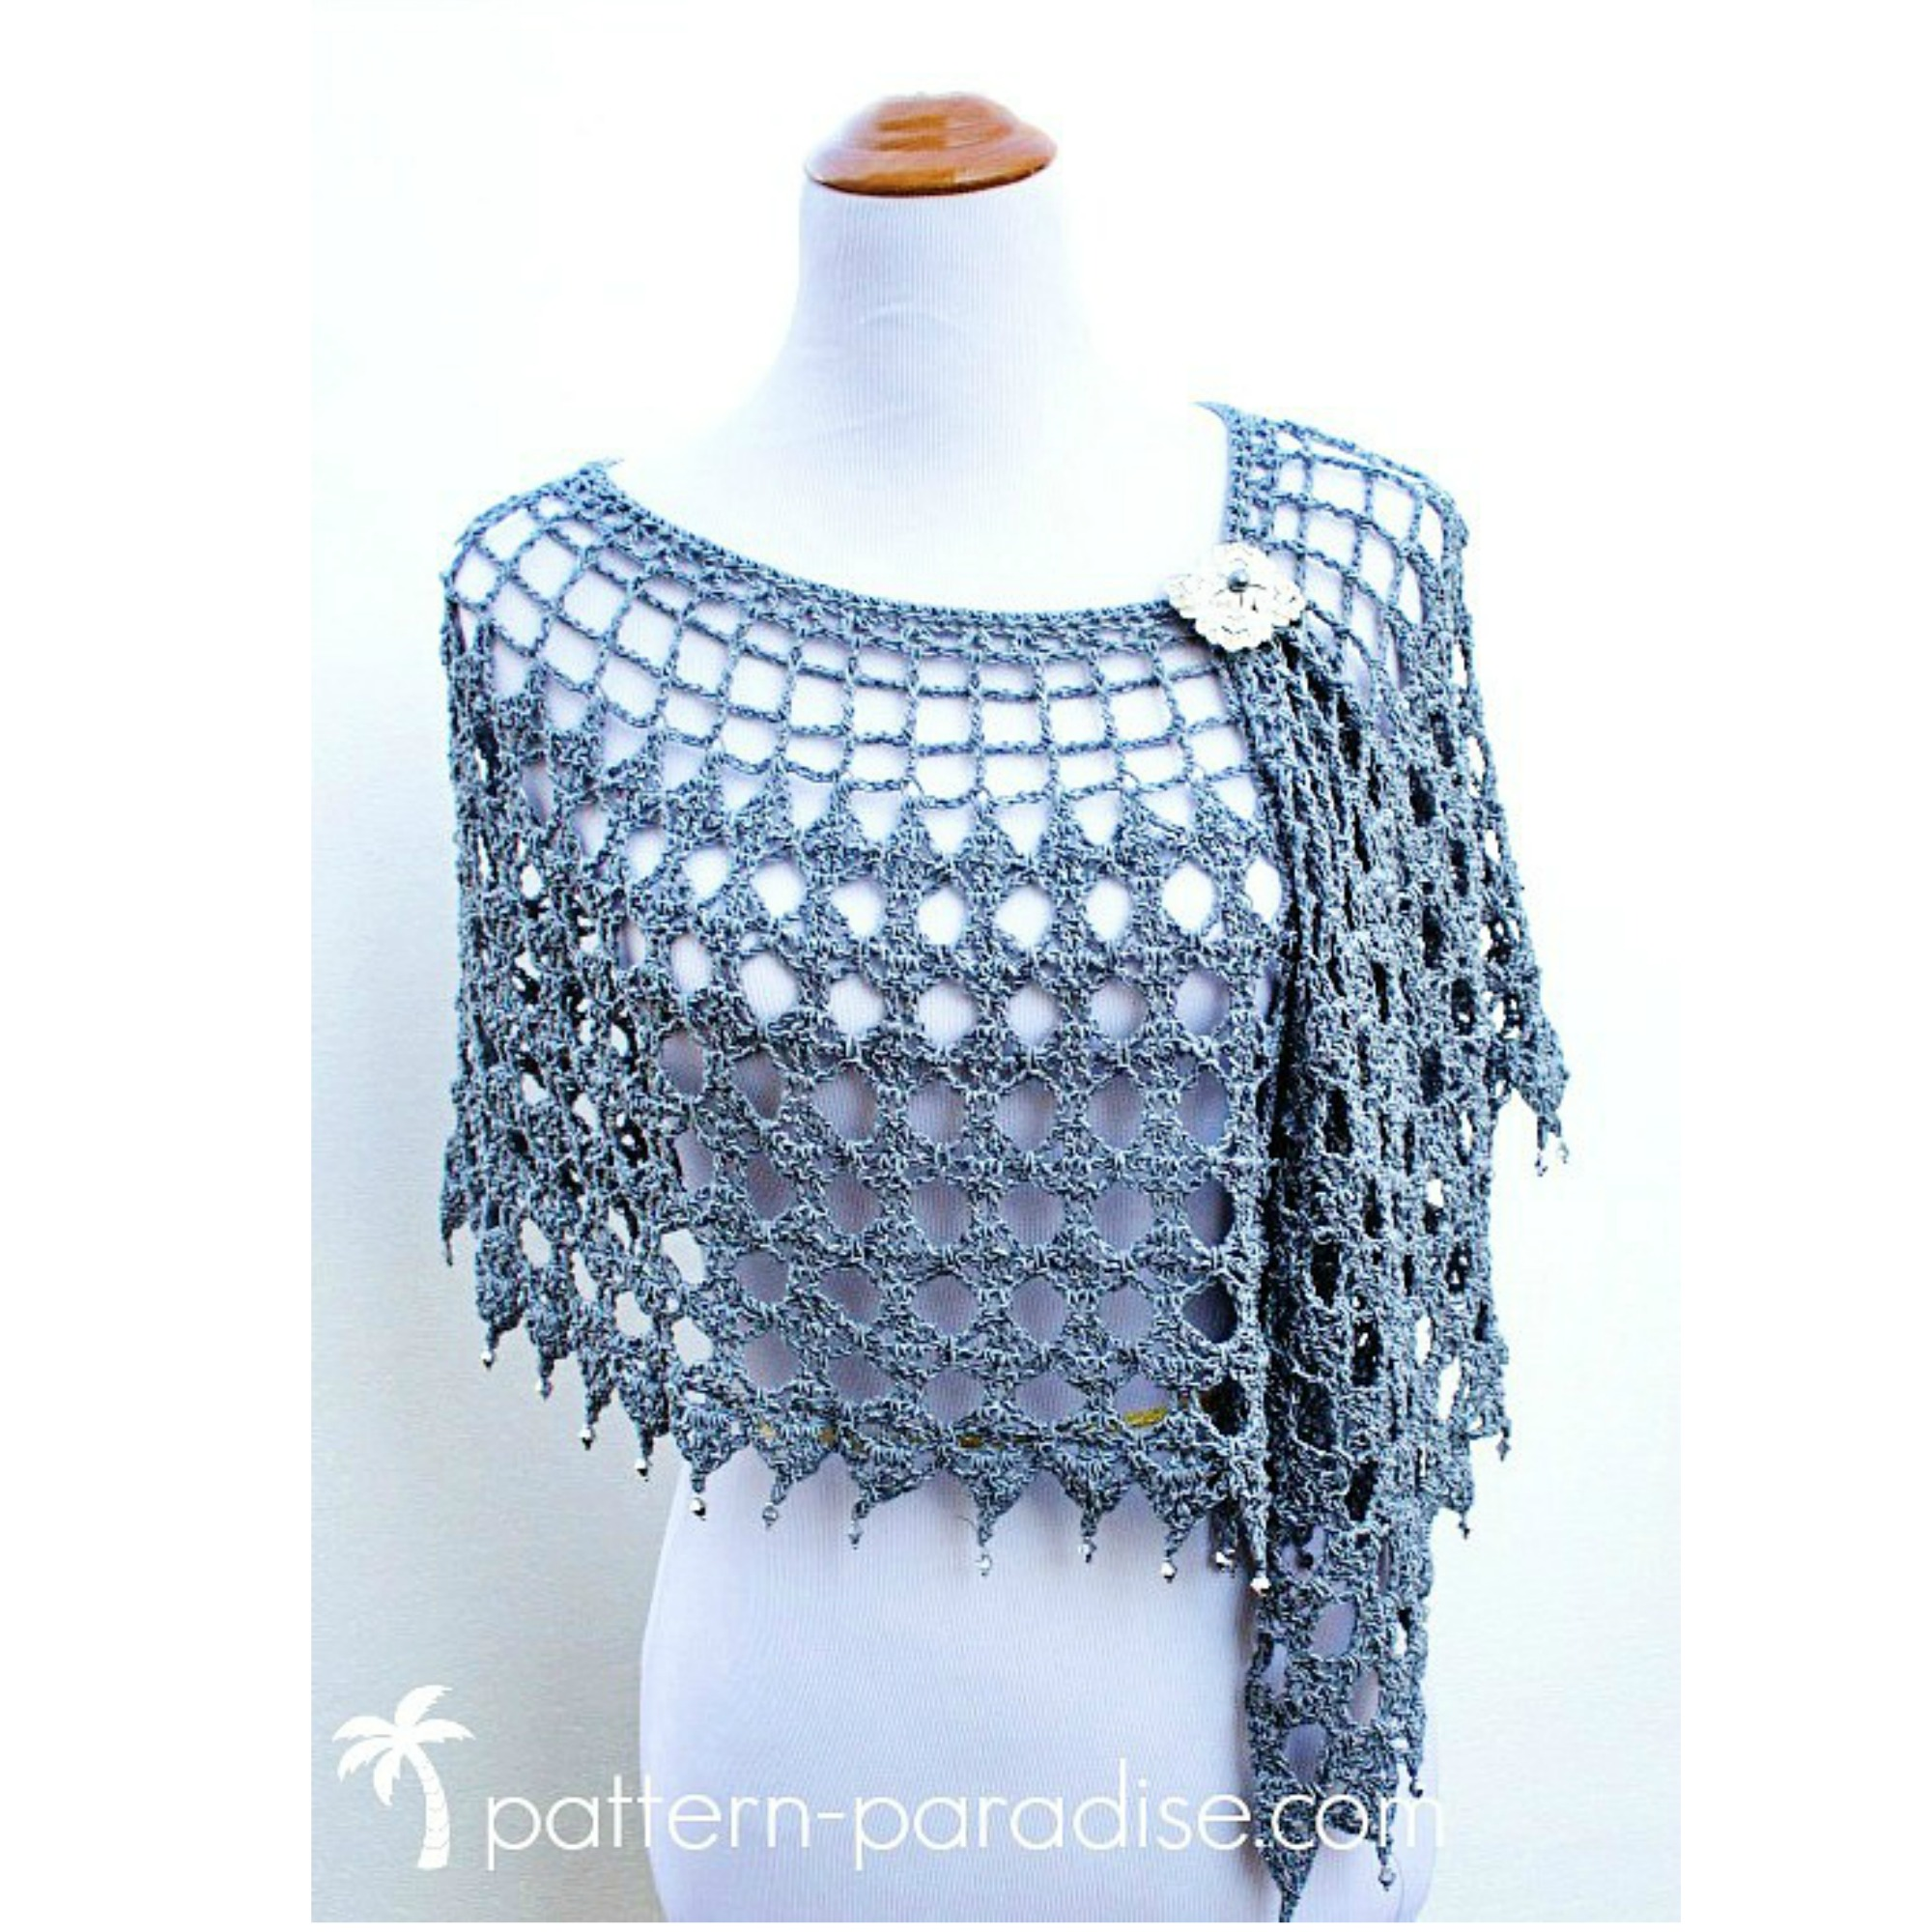 Evening Shimmer Wrap by Pattern-Paradise.com